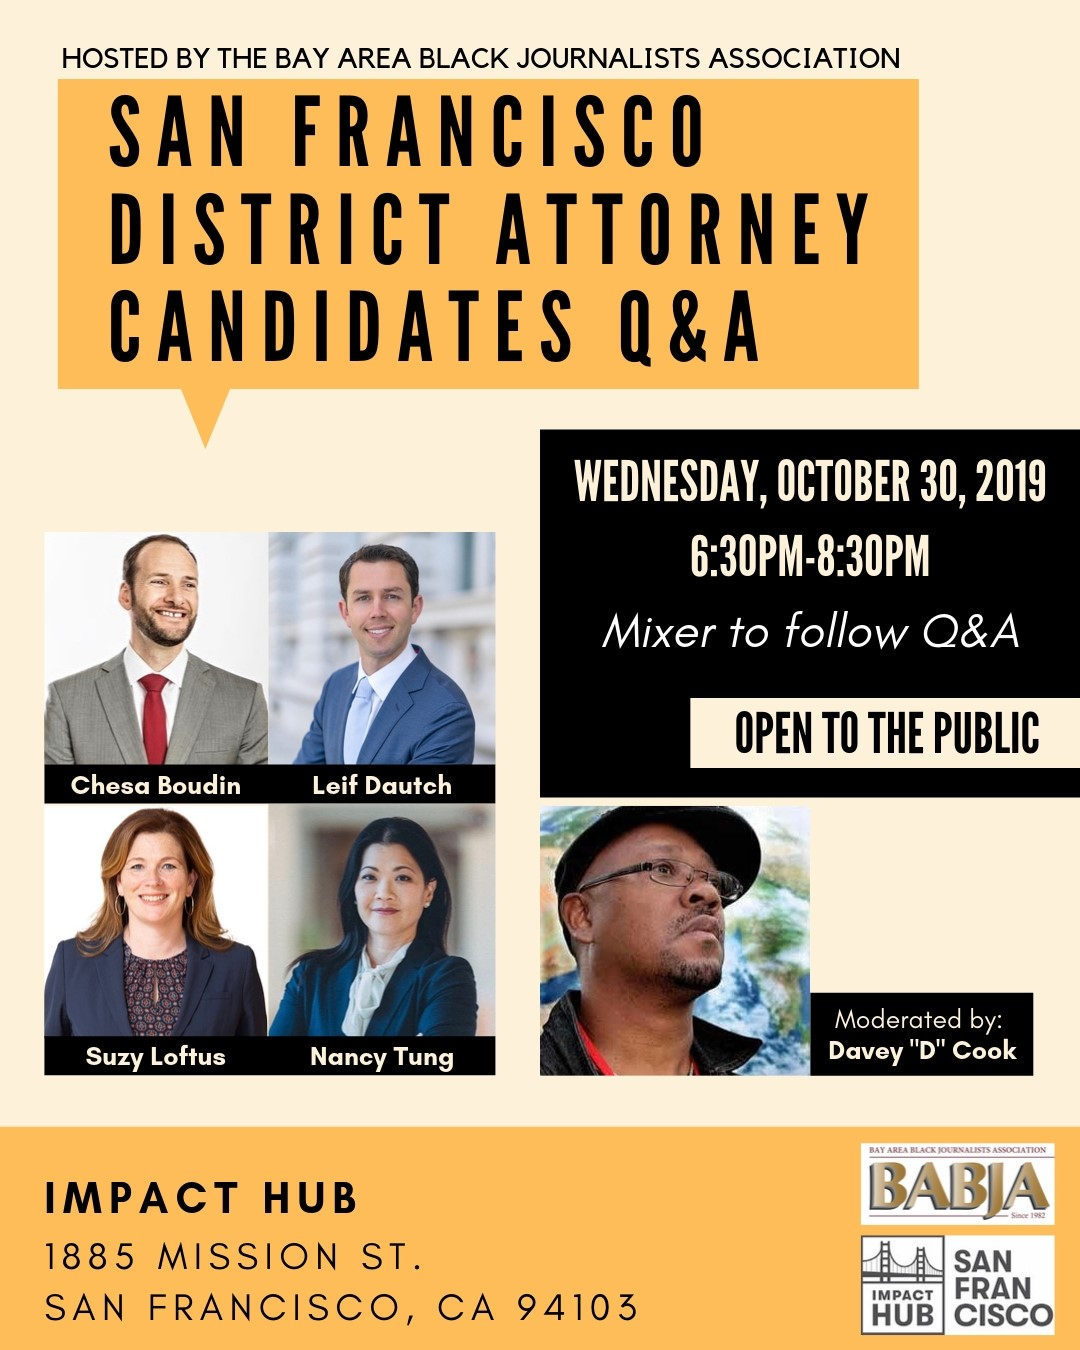 BABJA-SF-DA-Candidates-QA-103019-poster, BABJA to host Q&A with San Francisco District Attorney Candidates – Davey D to moderate – Wed., 10/30, Local News & Views